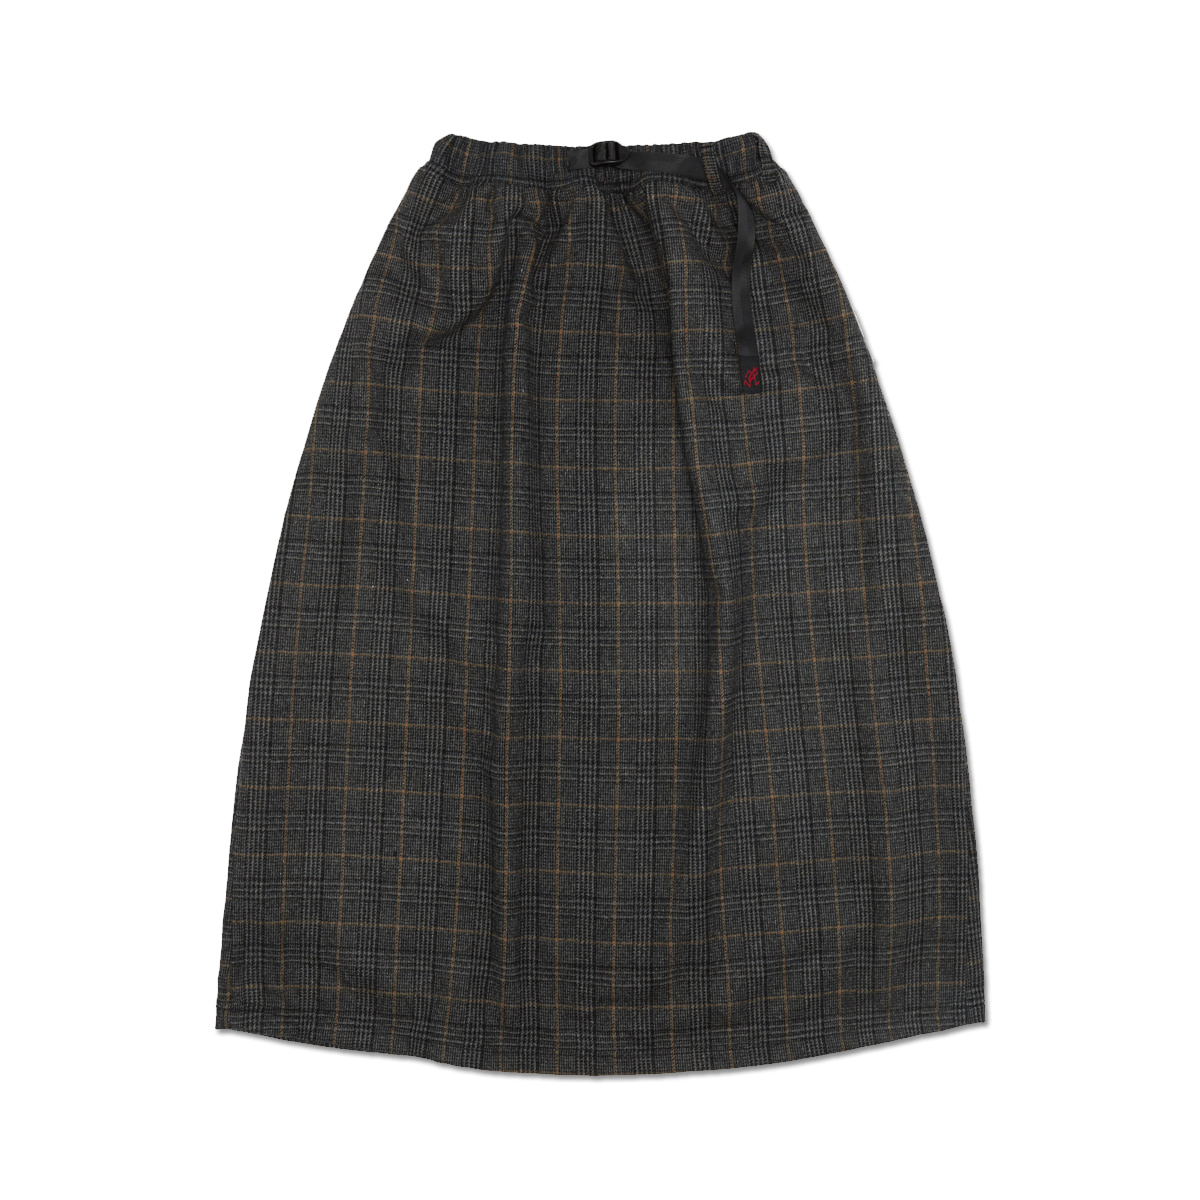 [GRAMICCI] WOOL BLEND LONG FLARE SKIRT 'CHECK GREY'